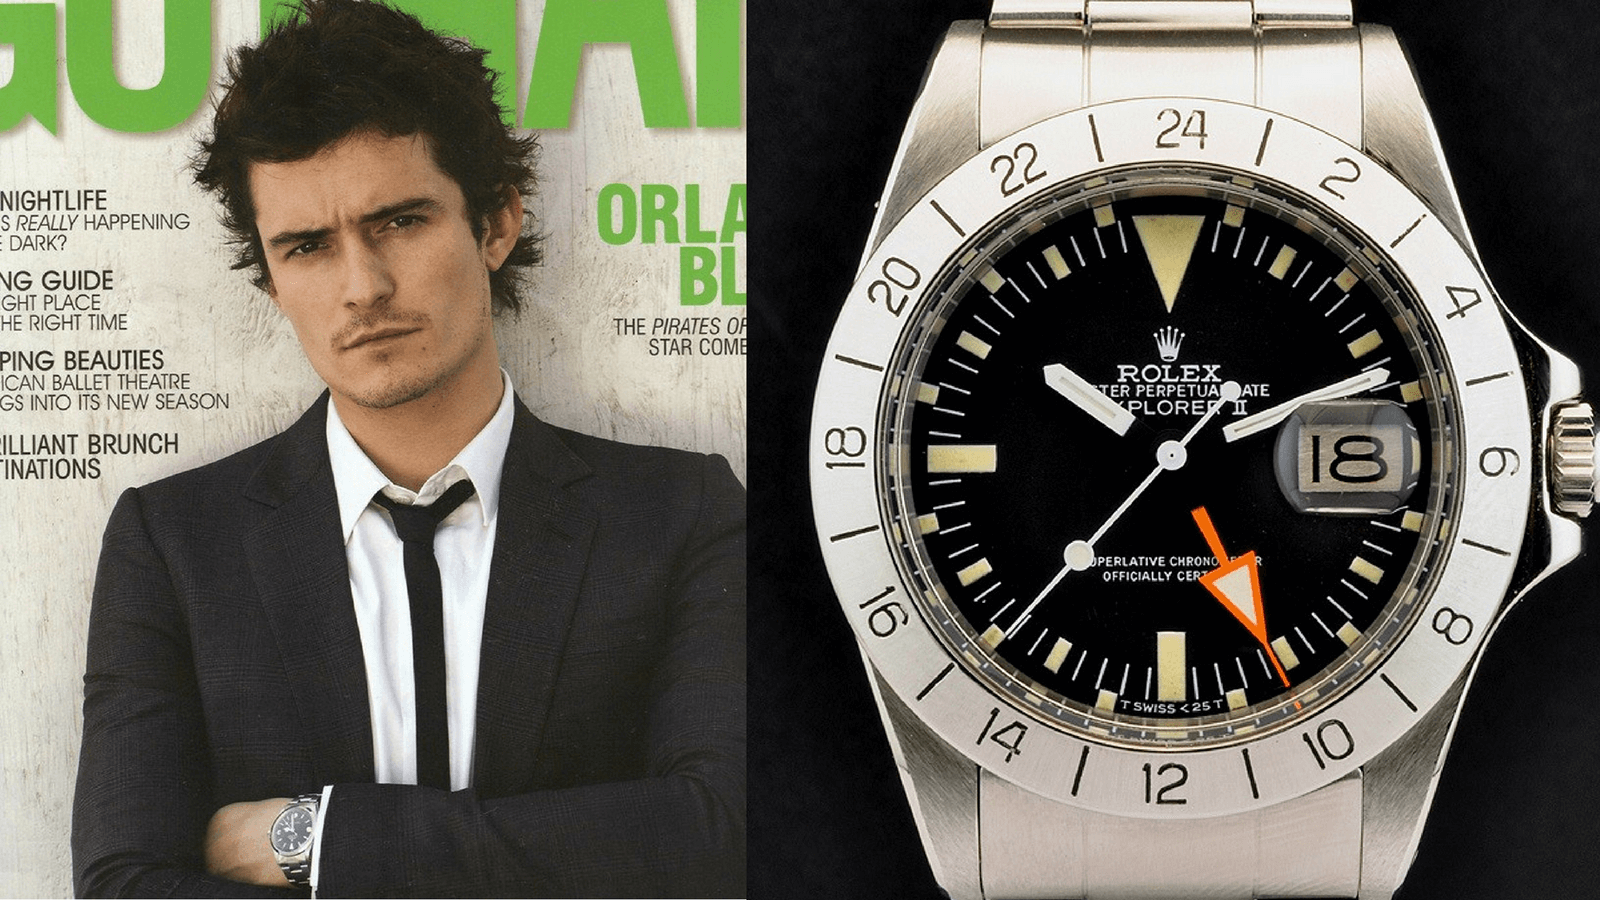 Collection Review: Orlando Bloom's (Stolen?) Watch Collection